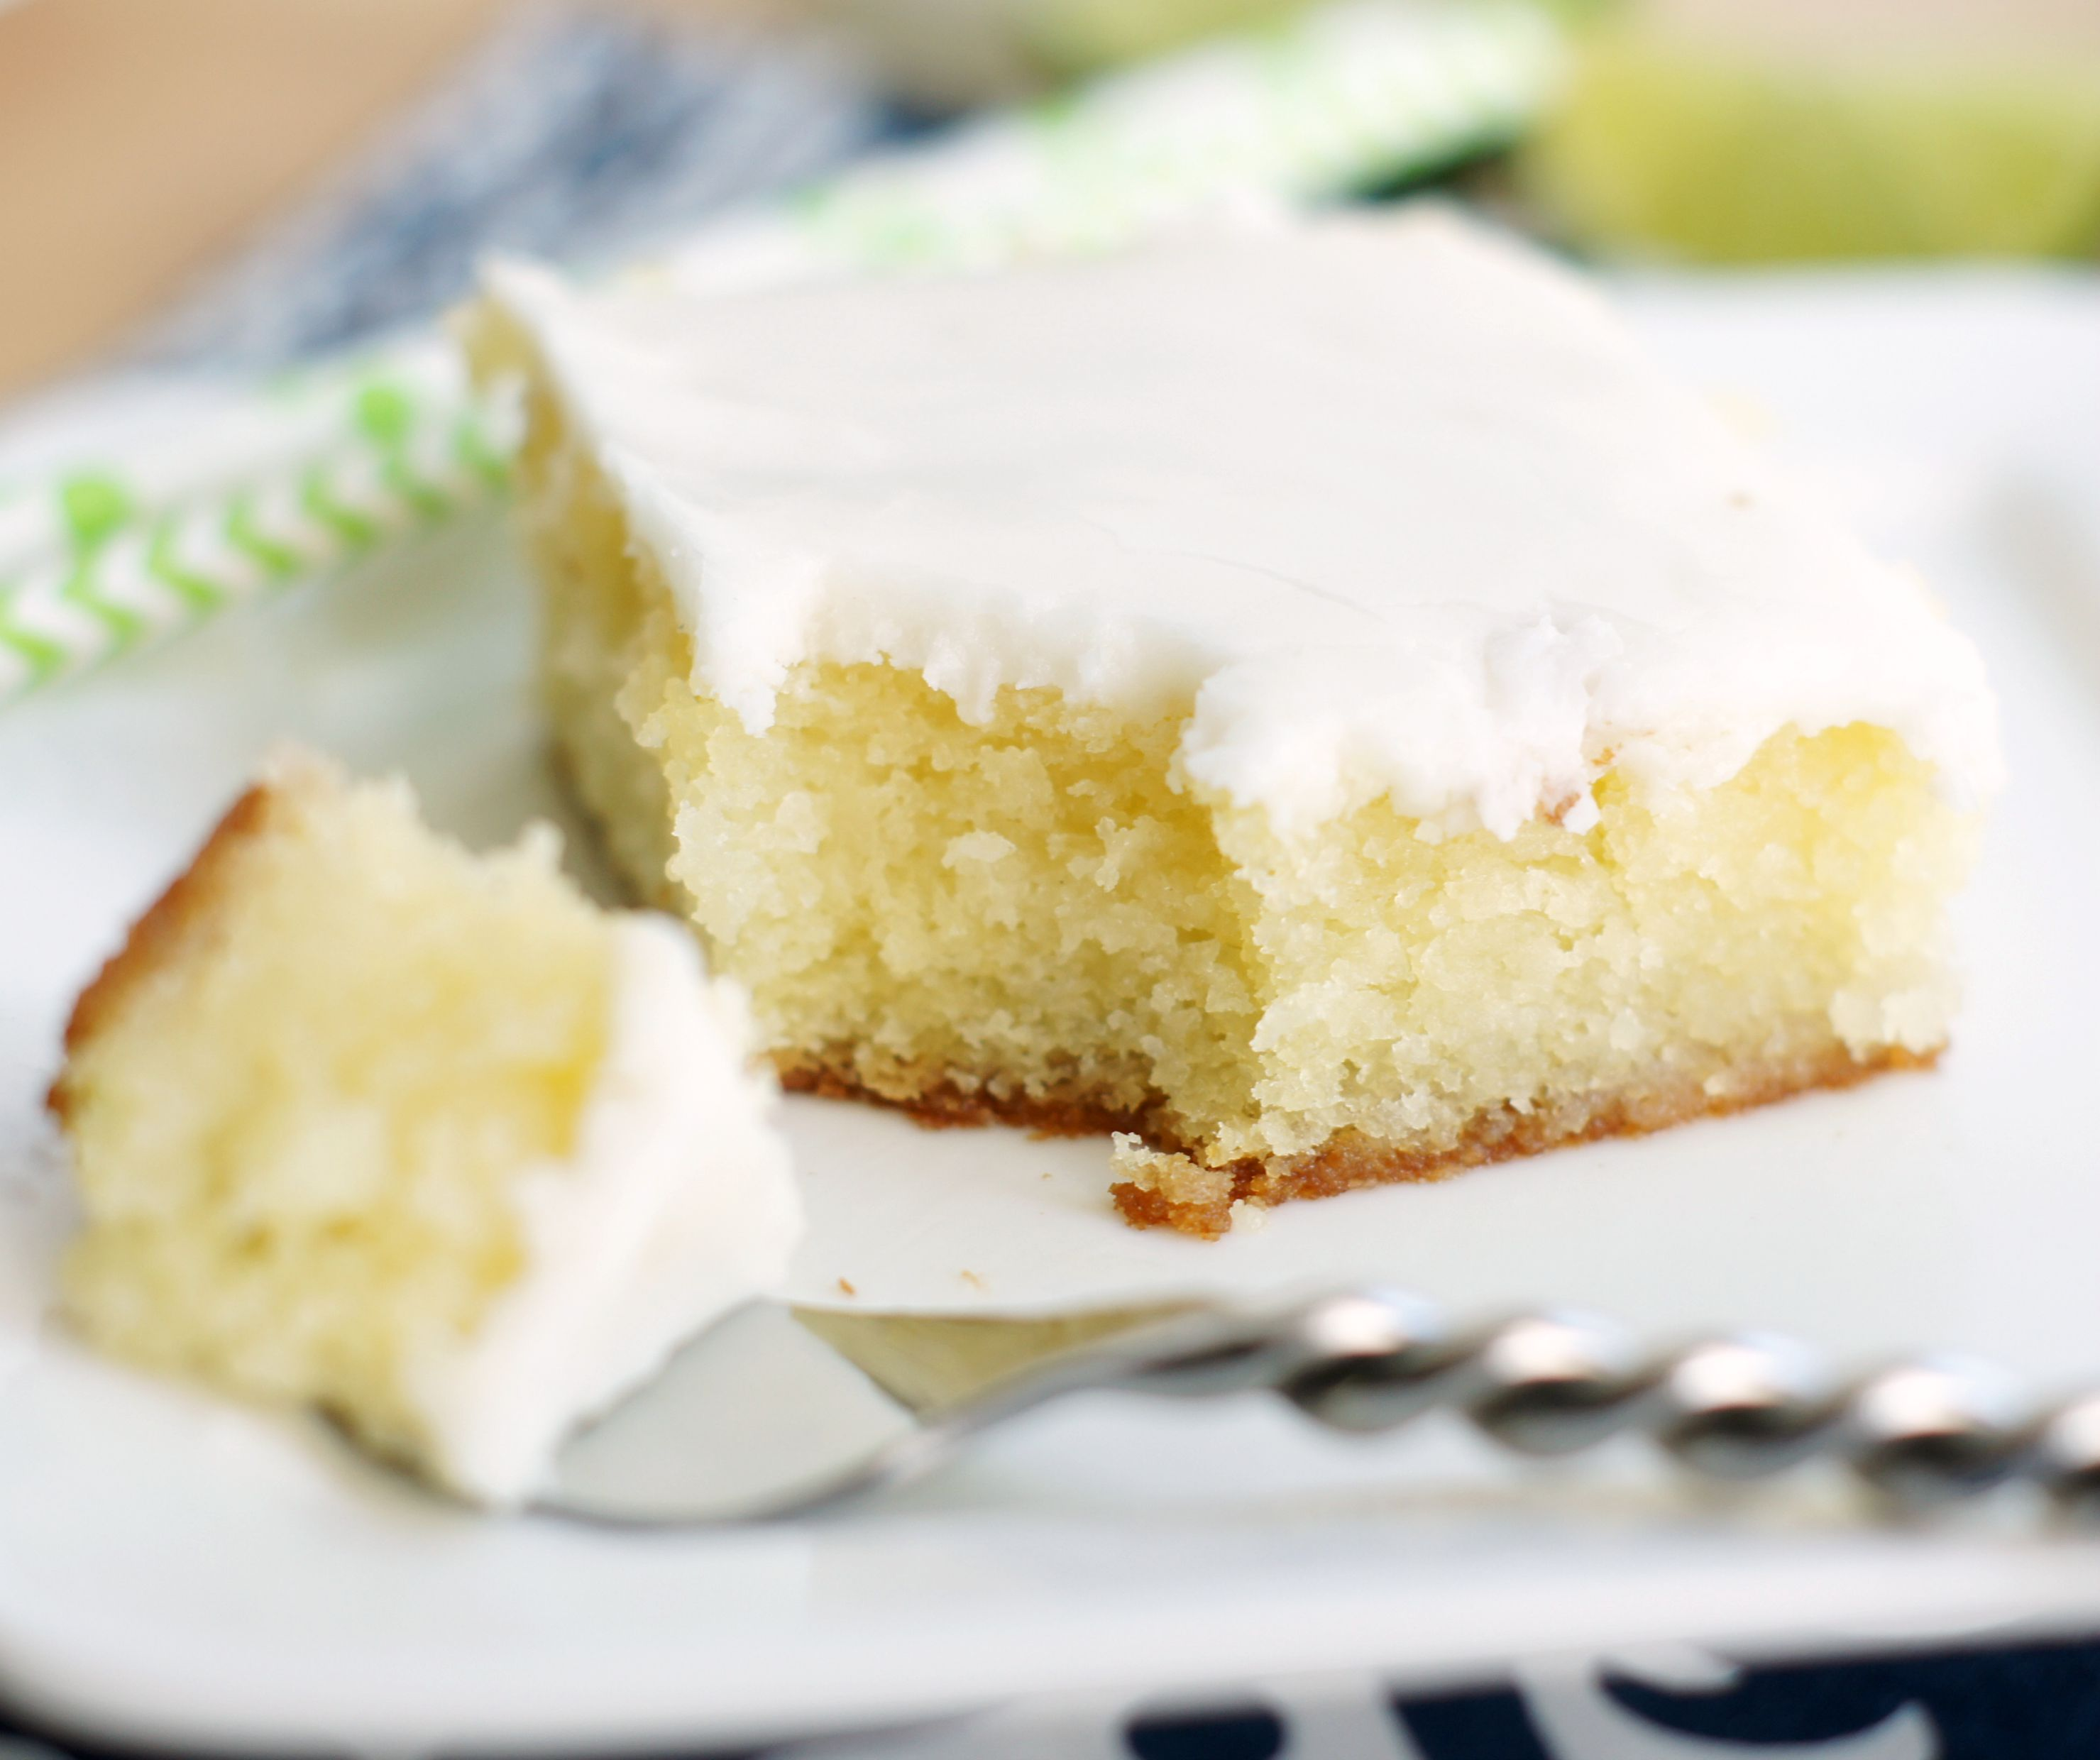 Up close shot of a piece of glaze lime cake with a bite on a fork